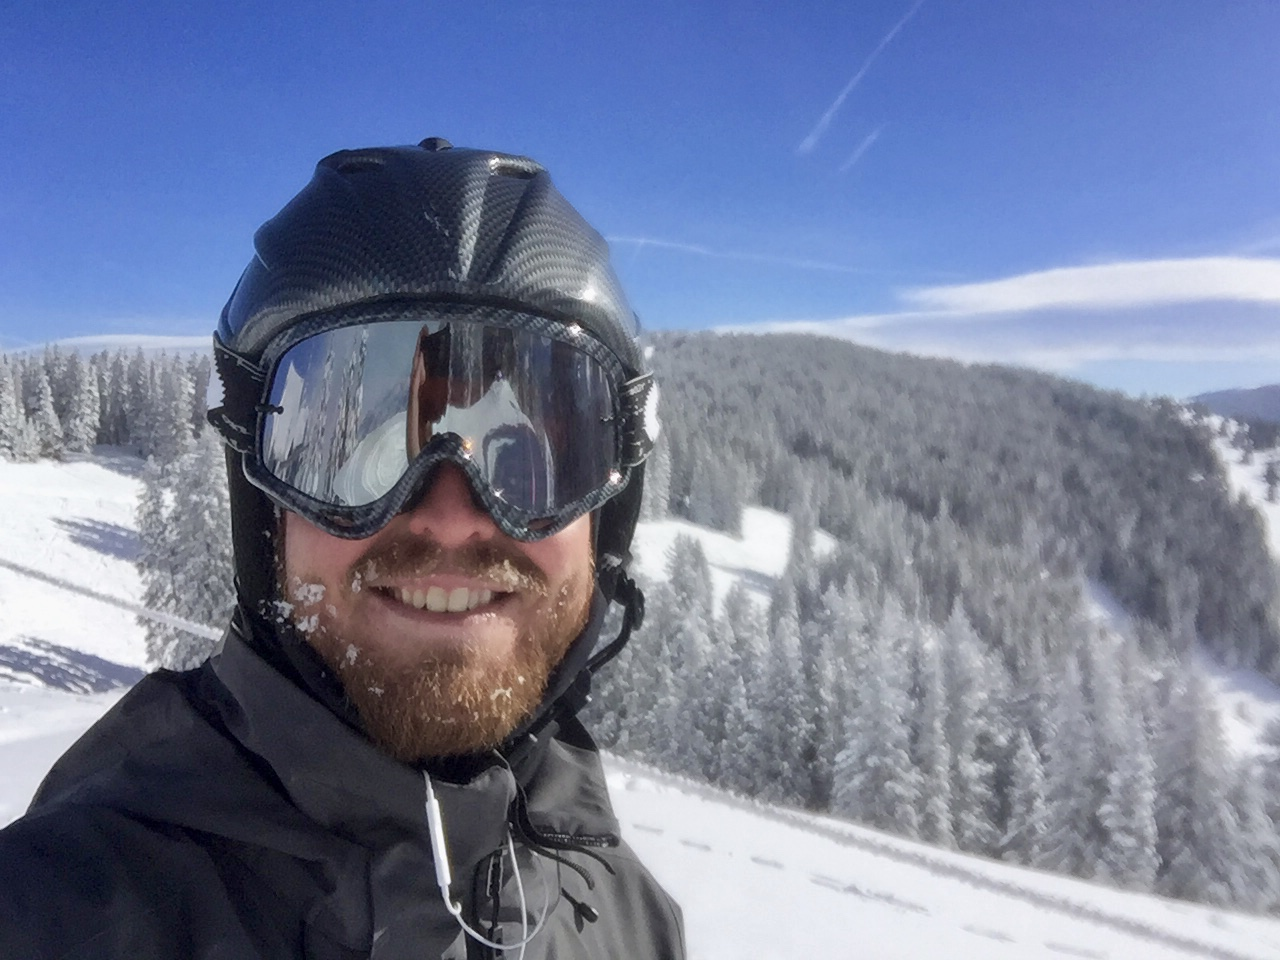 Sweaty person snowboarding